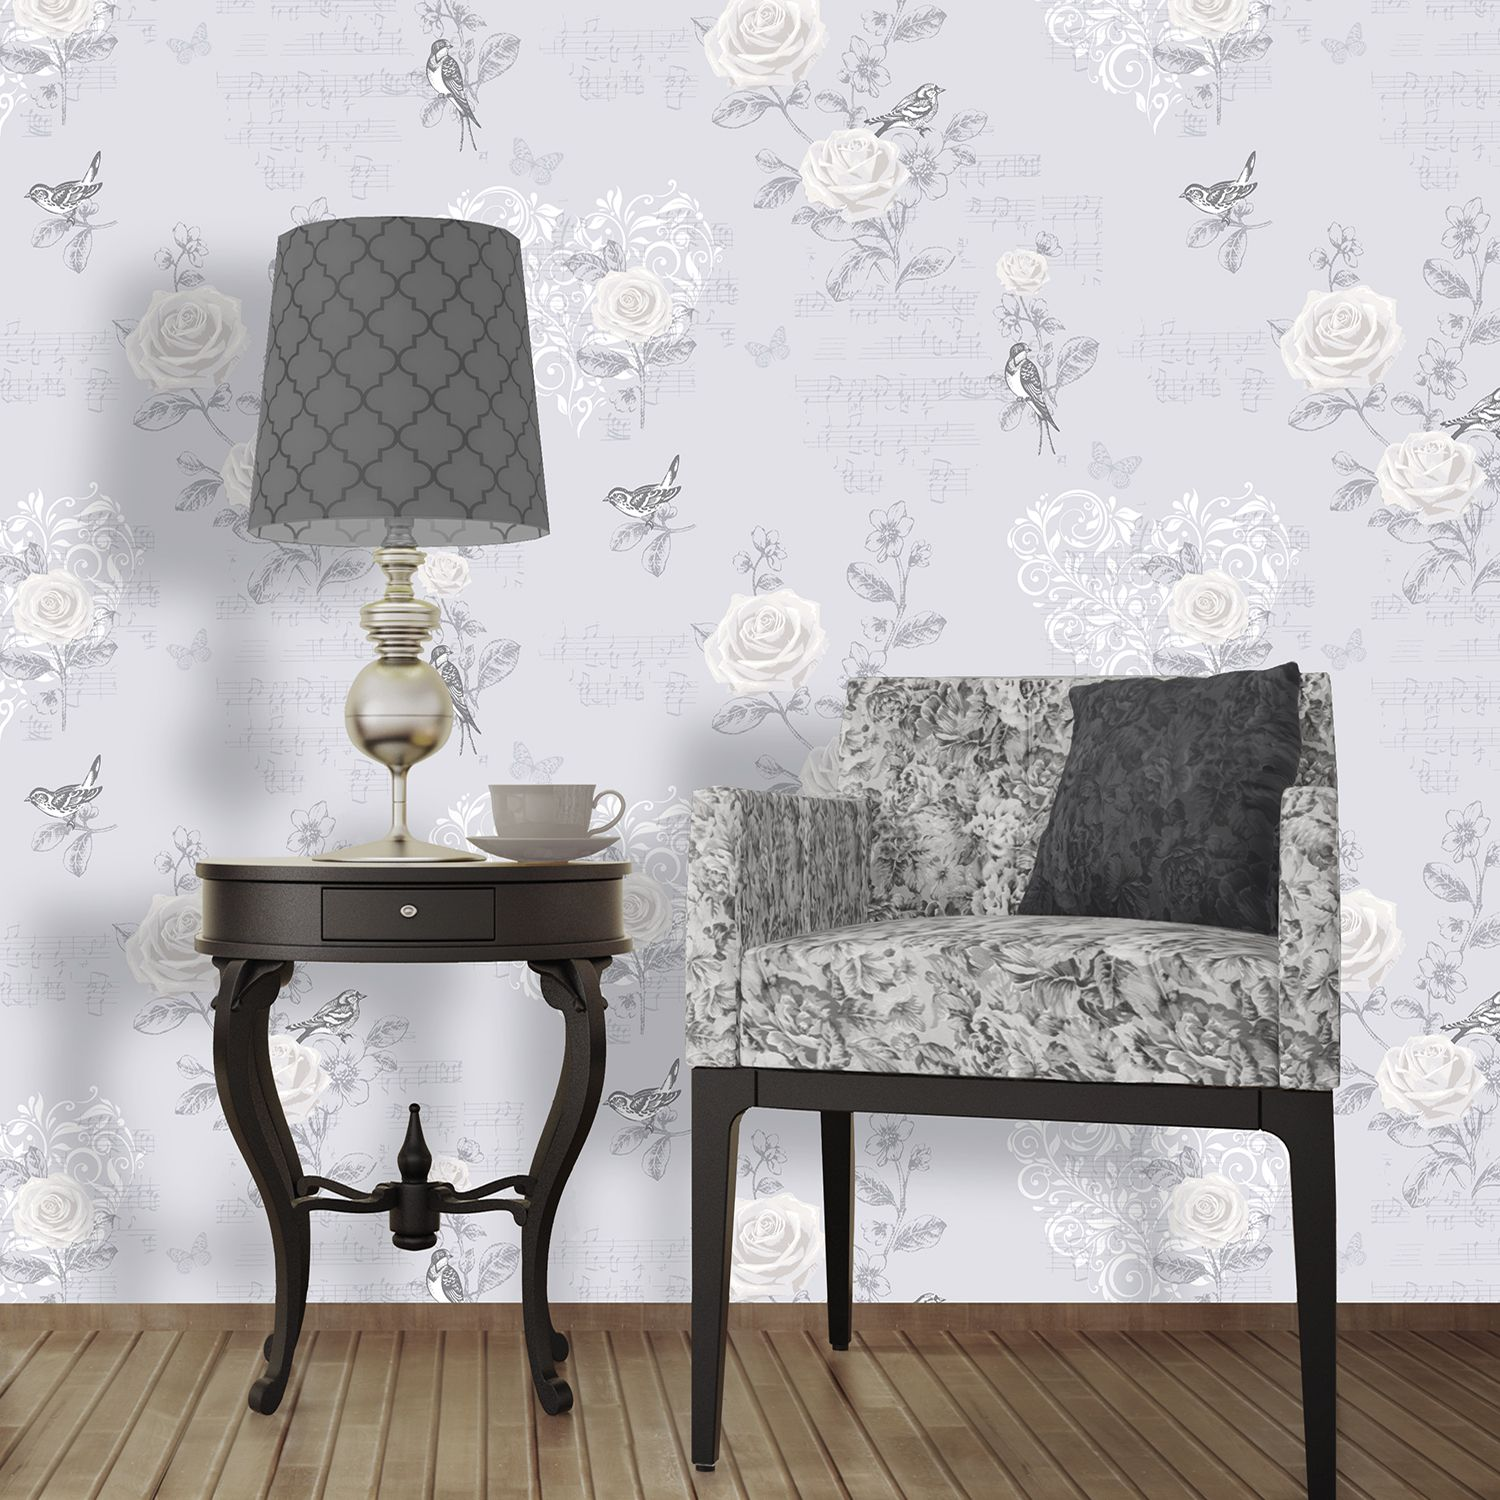 Httpwwwtherangecoukcoloroll Jenny Wren French Grey Wallpaper The Rangefcp Product102909